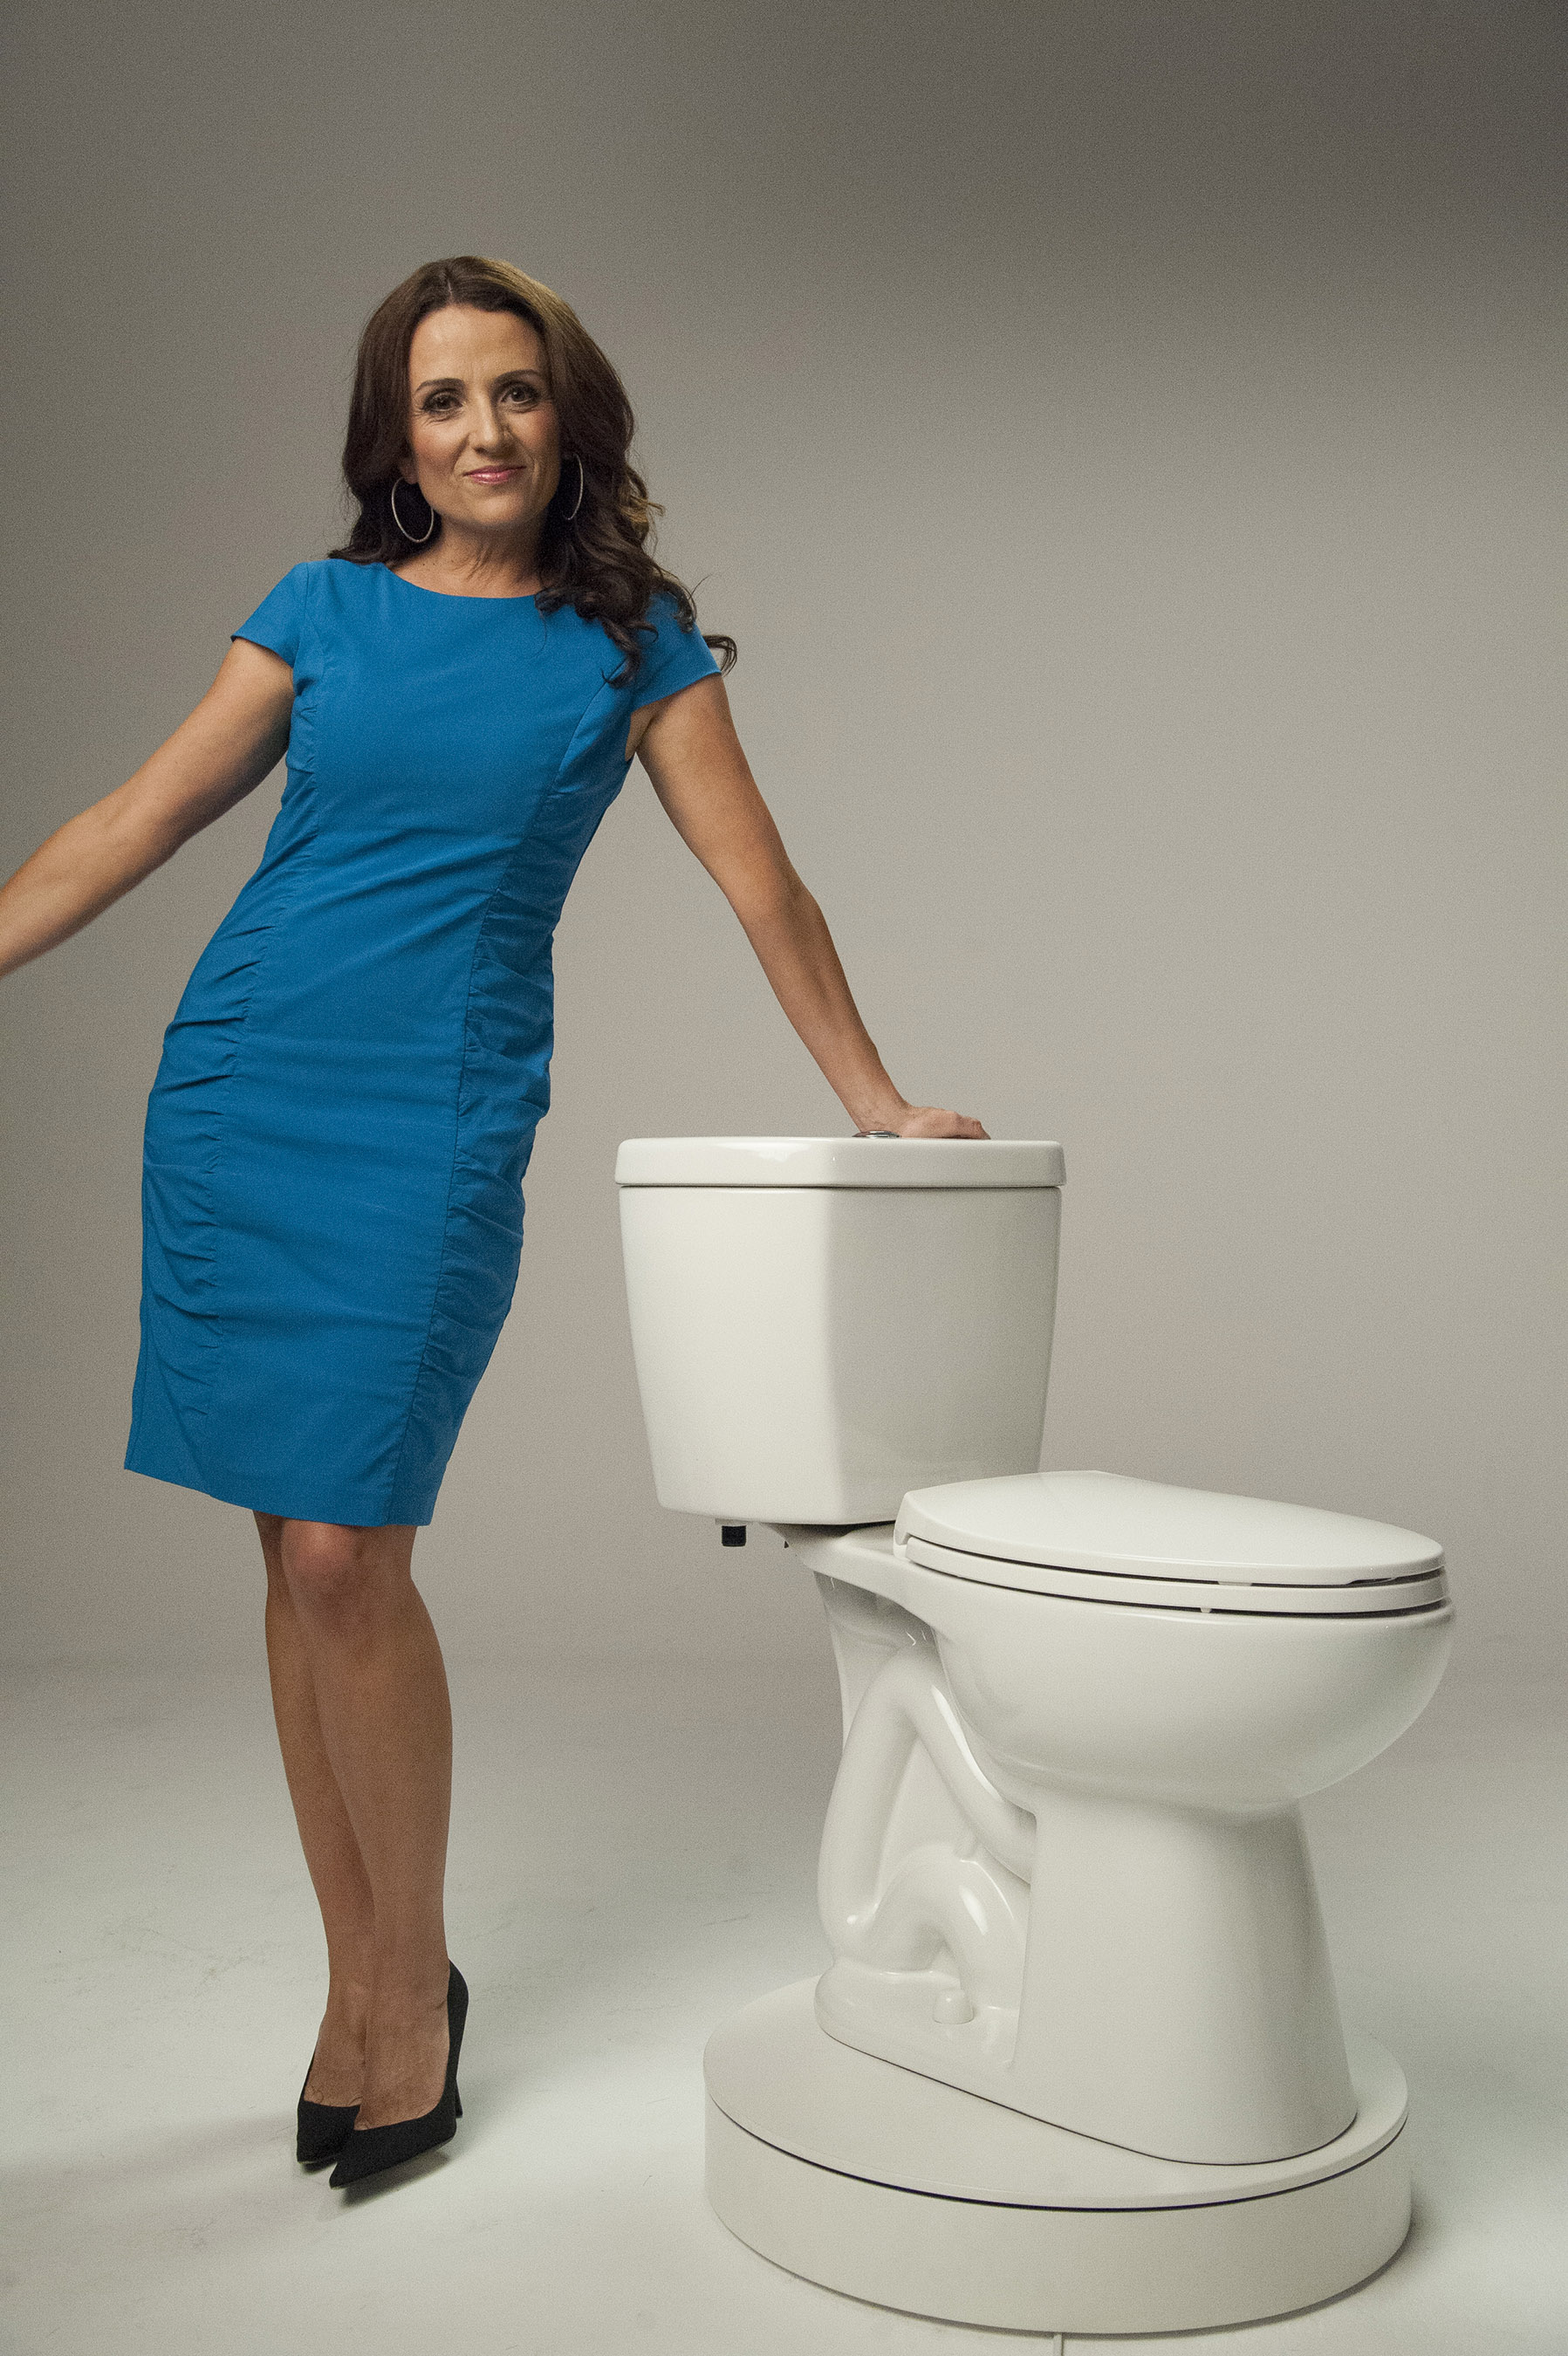 World\'s Most Efficient Toilet Maker Aims to Unseat Water Hogs